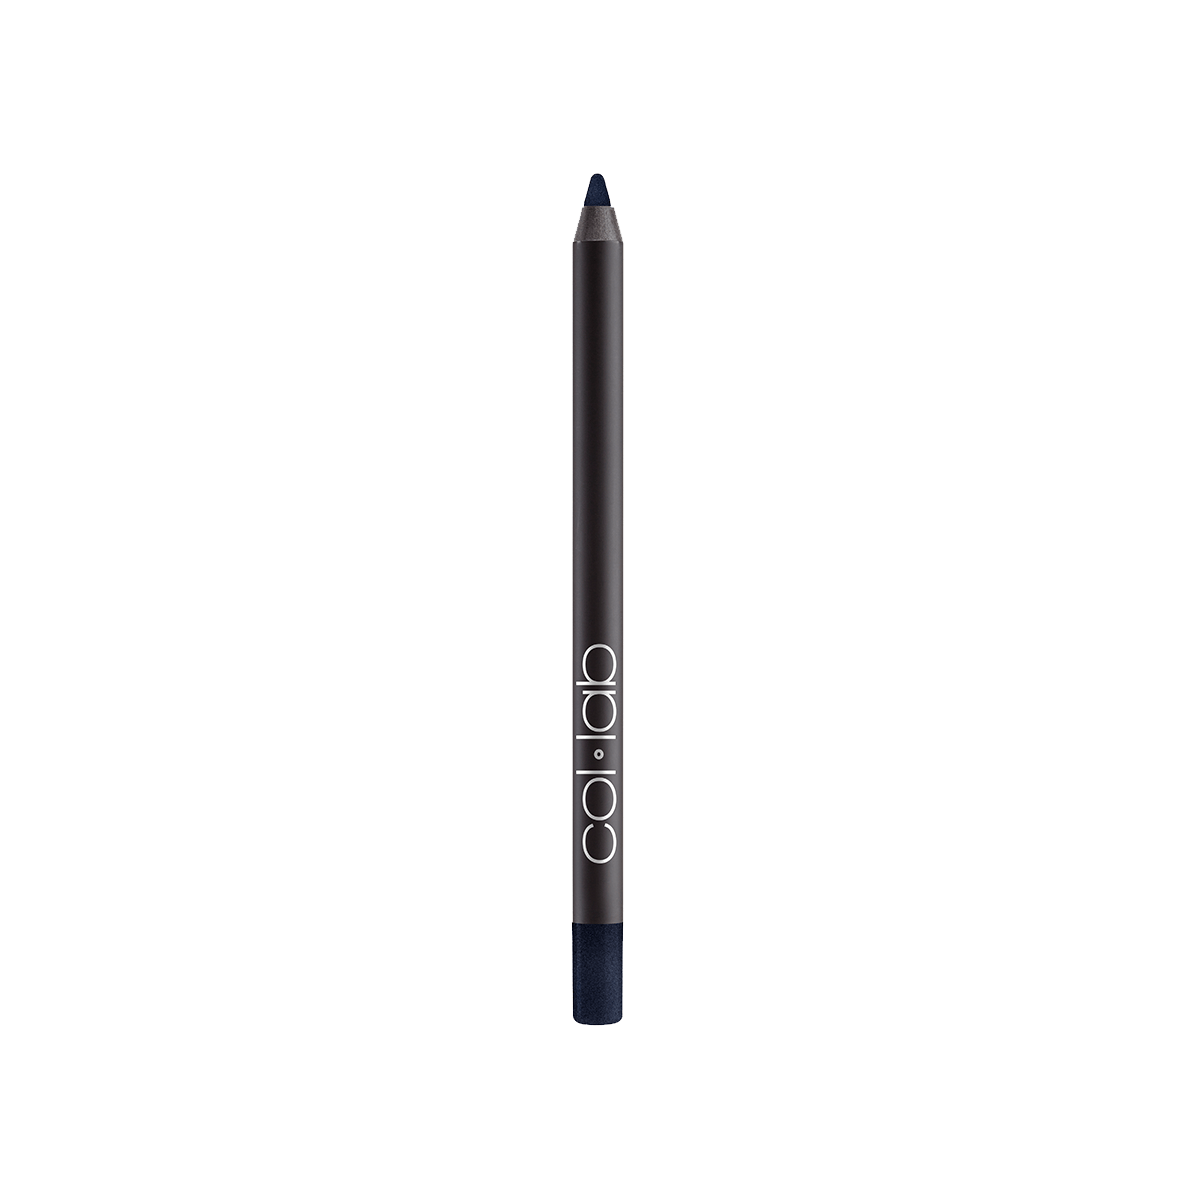 collab-bold-faced liner-waterproof-eye-lining-pencil-strut-open.png